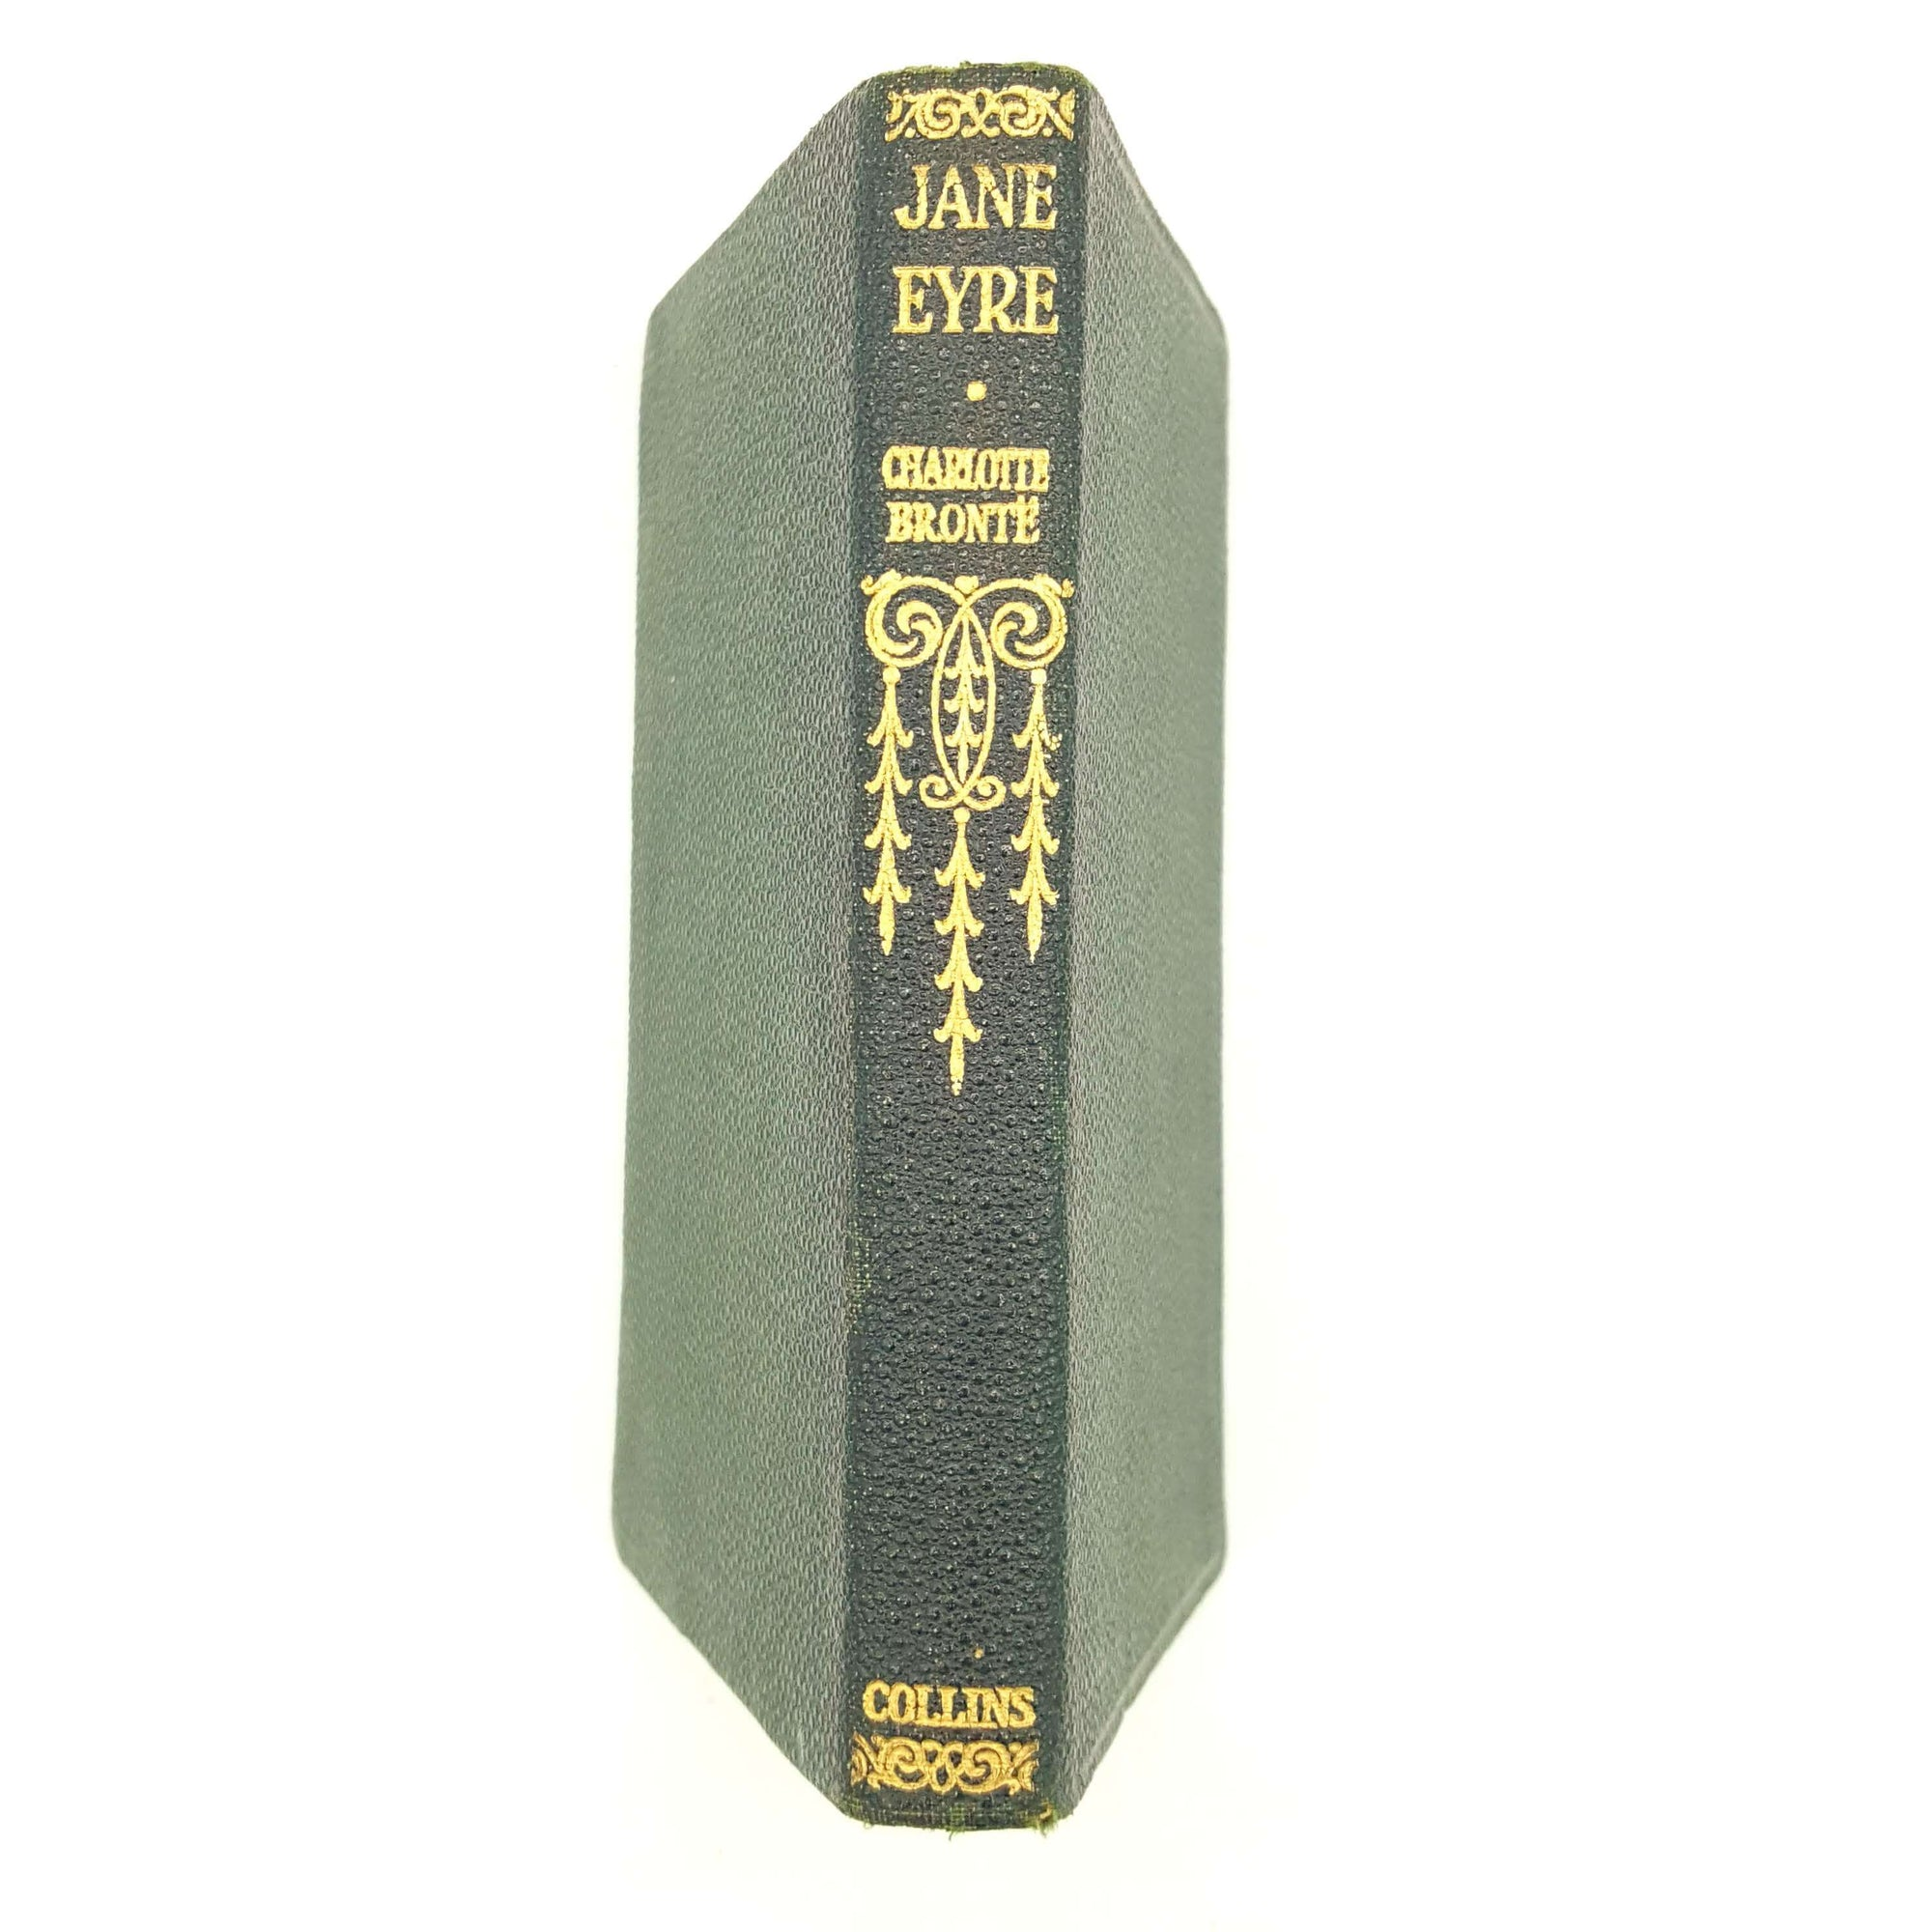 Charlotte Brontë's Jane Eyre c.1940 - Collins Country House Library